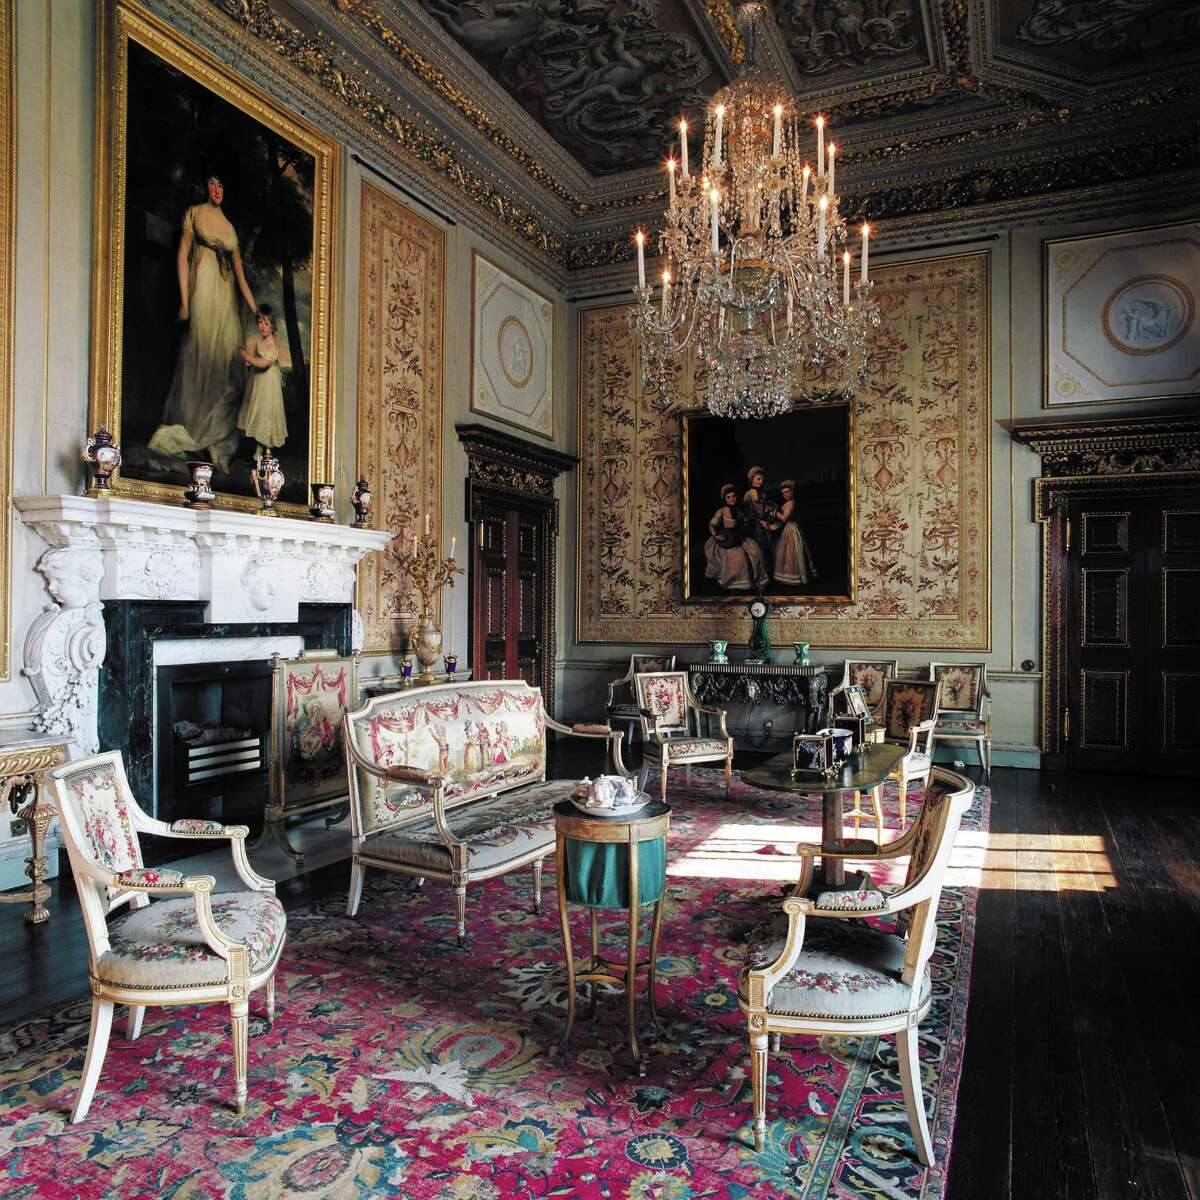 Objects from the White Drawing Room, where paintings by John Hoppner and George James are fixtures, have been transplanted in Houston.